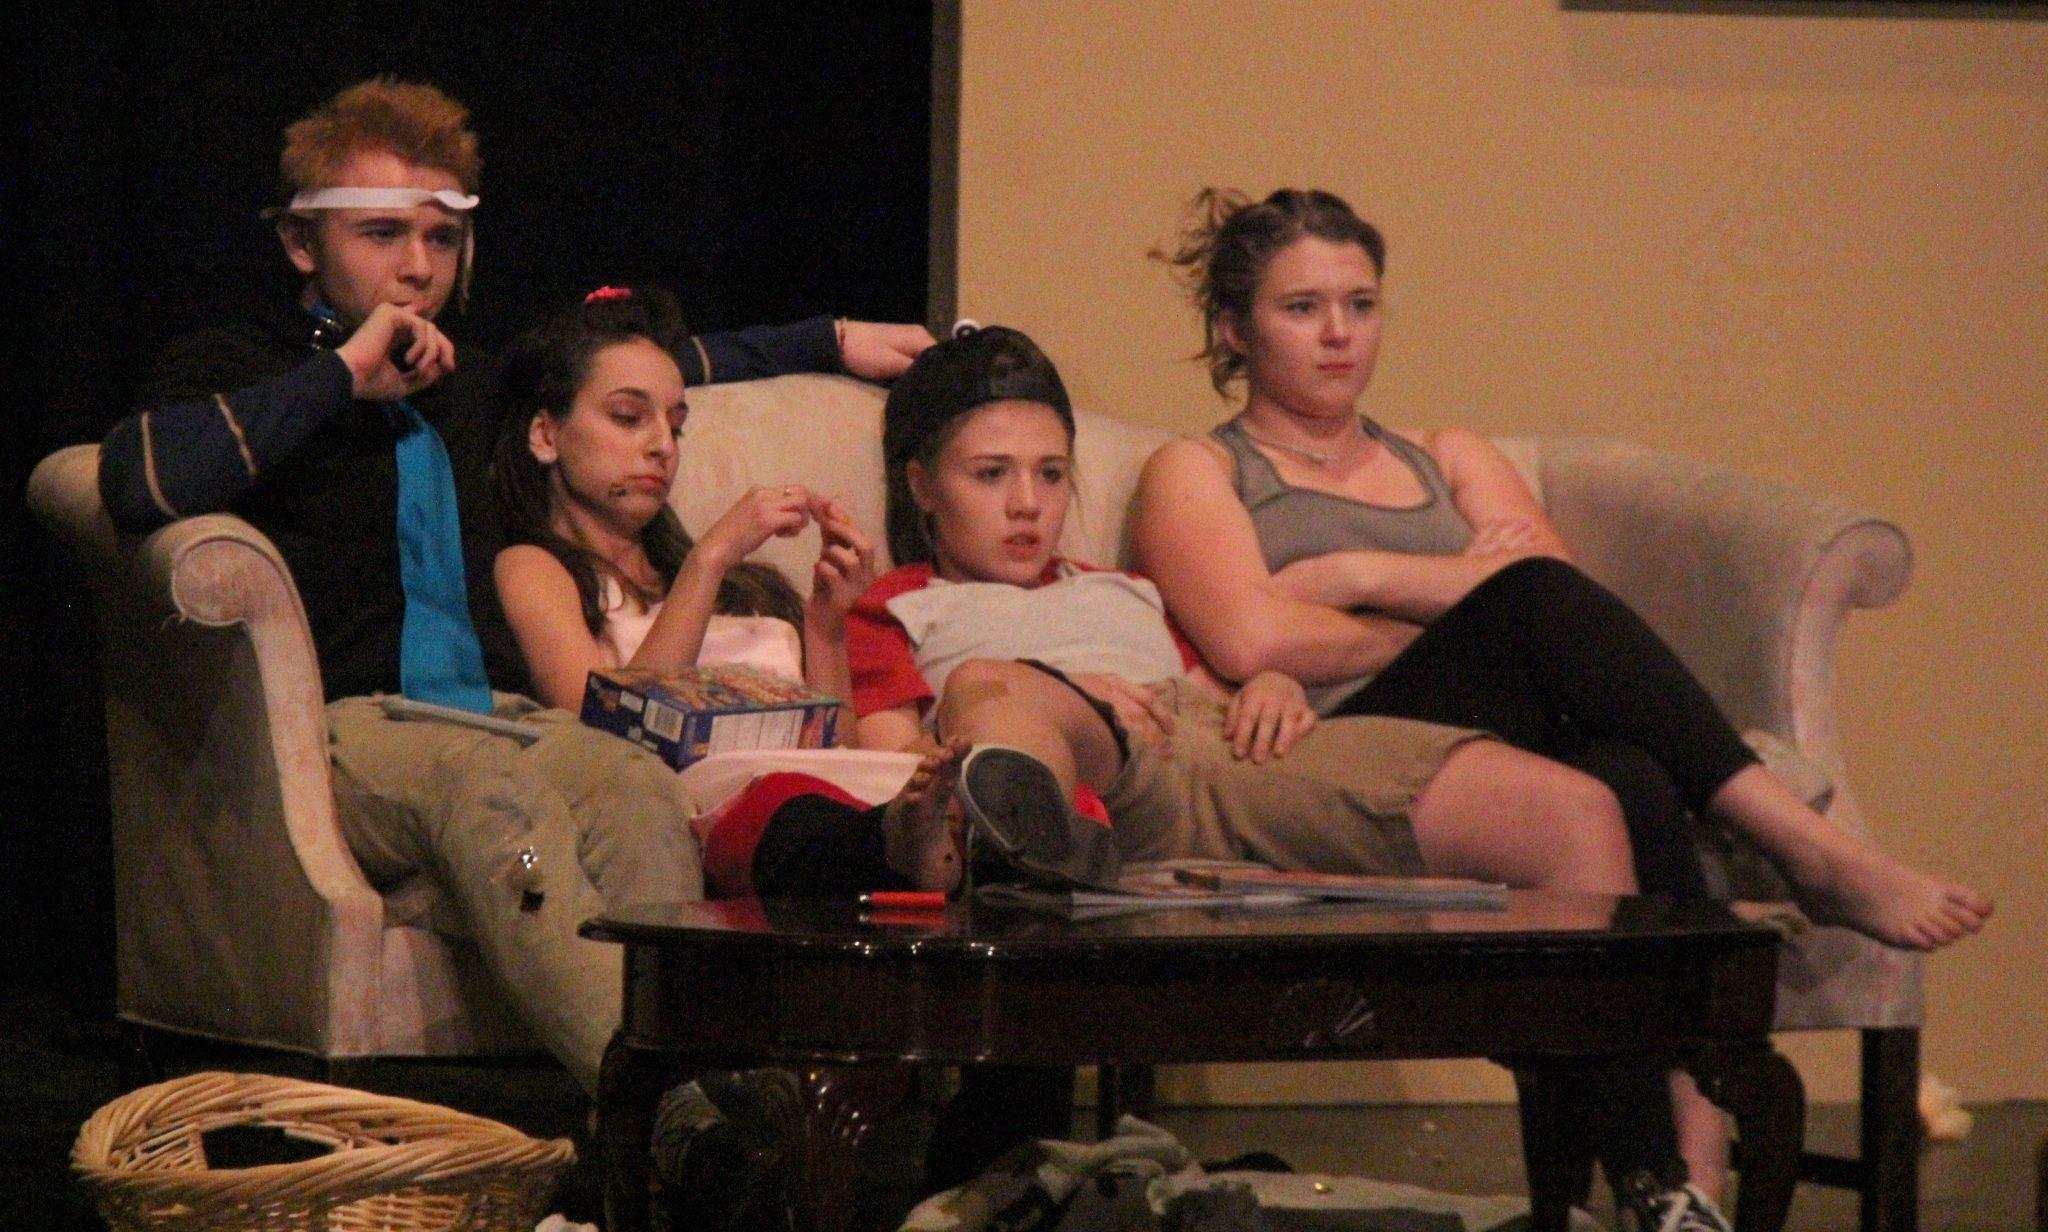 PHOTO GALLERY: Theater One Acts